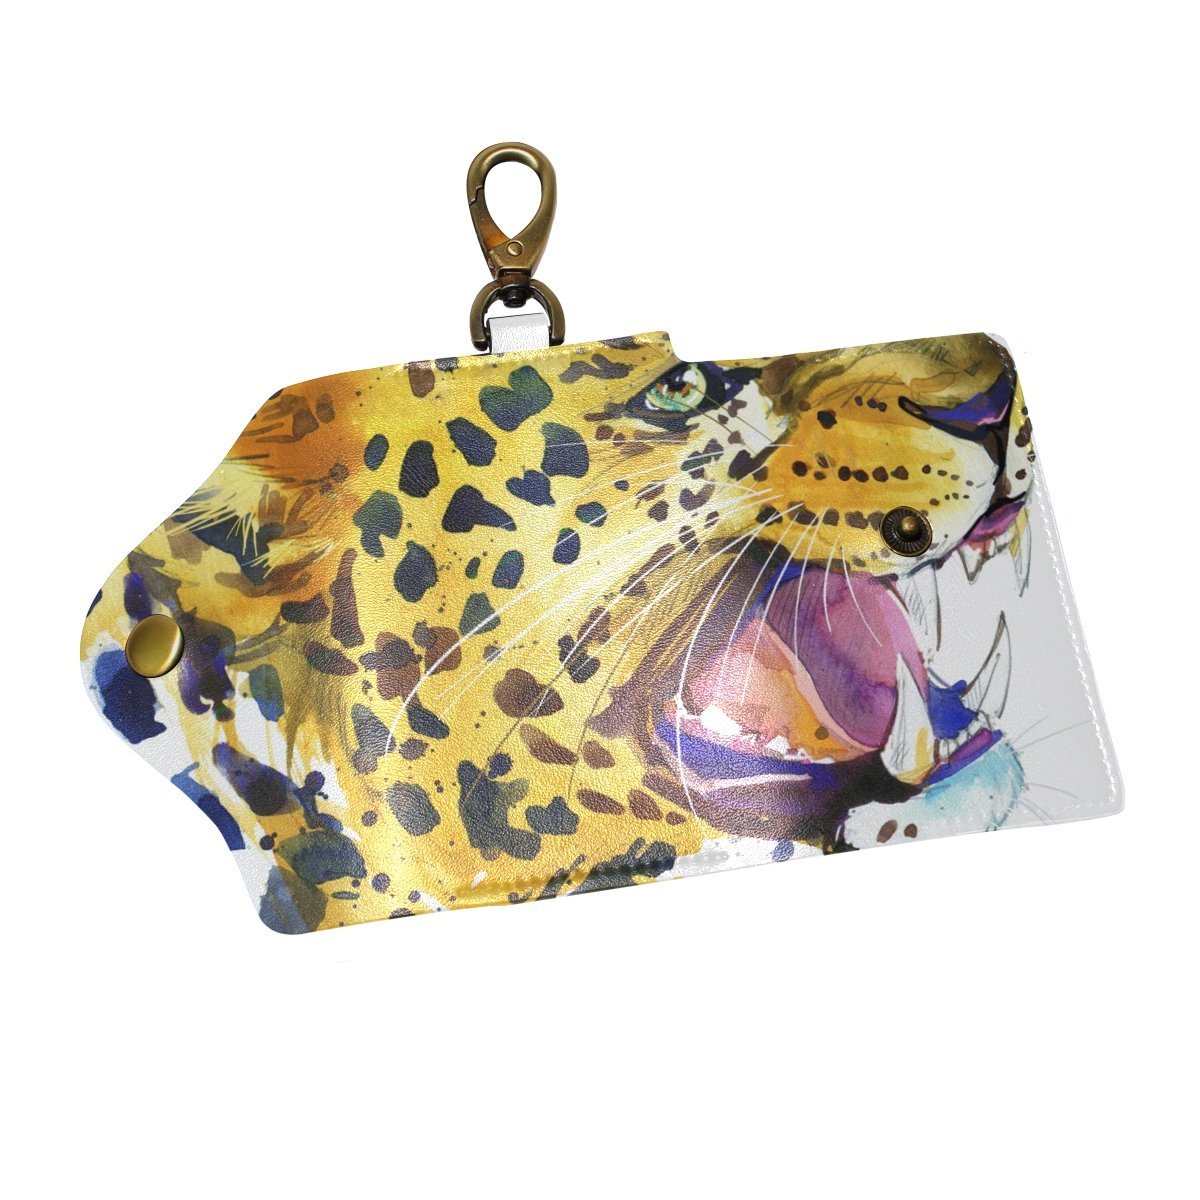 KEAKIA Leopard Growls Graphic Leather Key Case Wallets Tri-fold Key Holder Keychains with 6 Hooks 2 Slot Snap Closure for Men Women